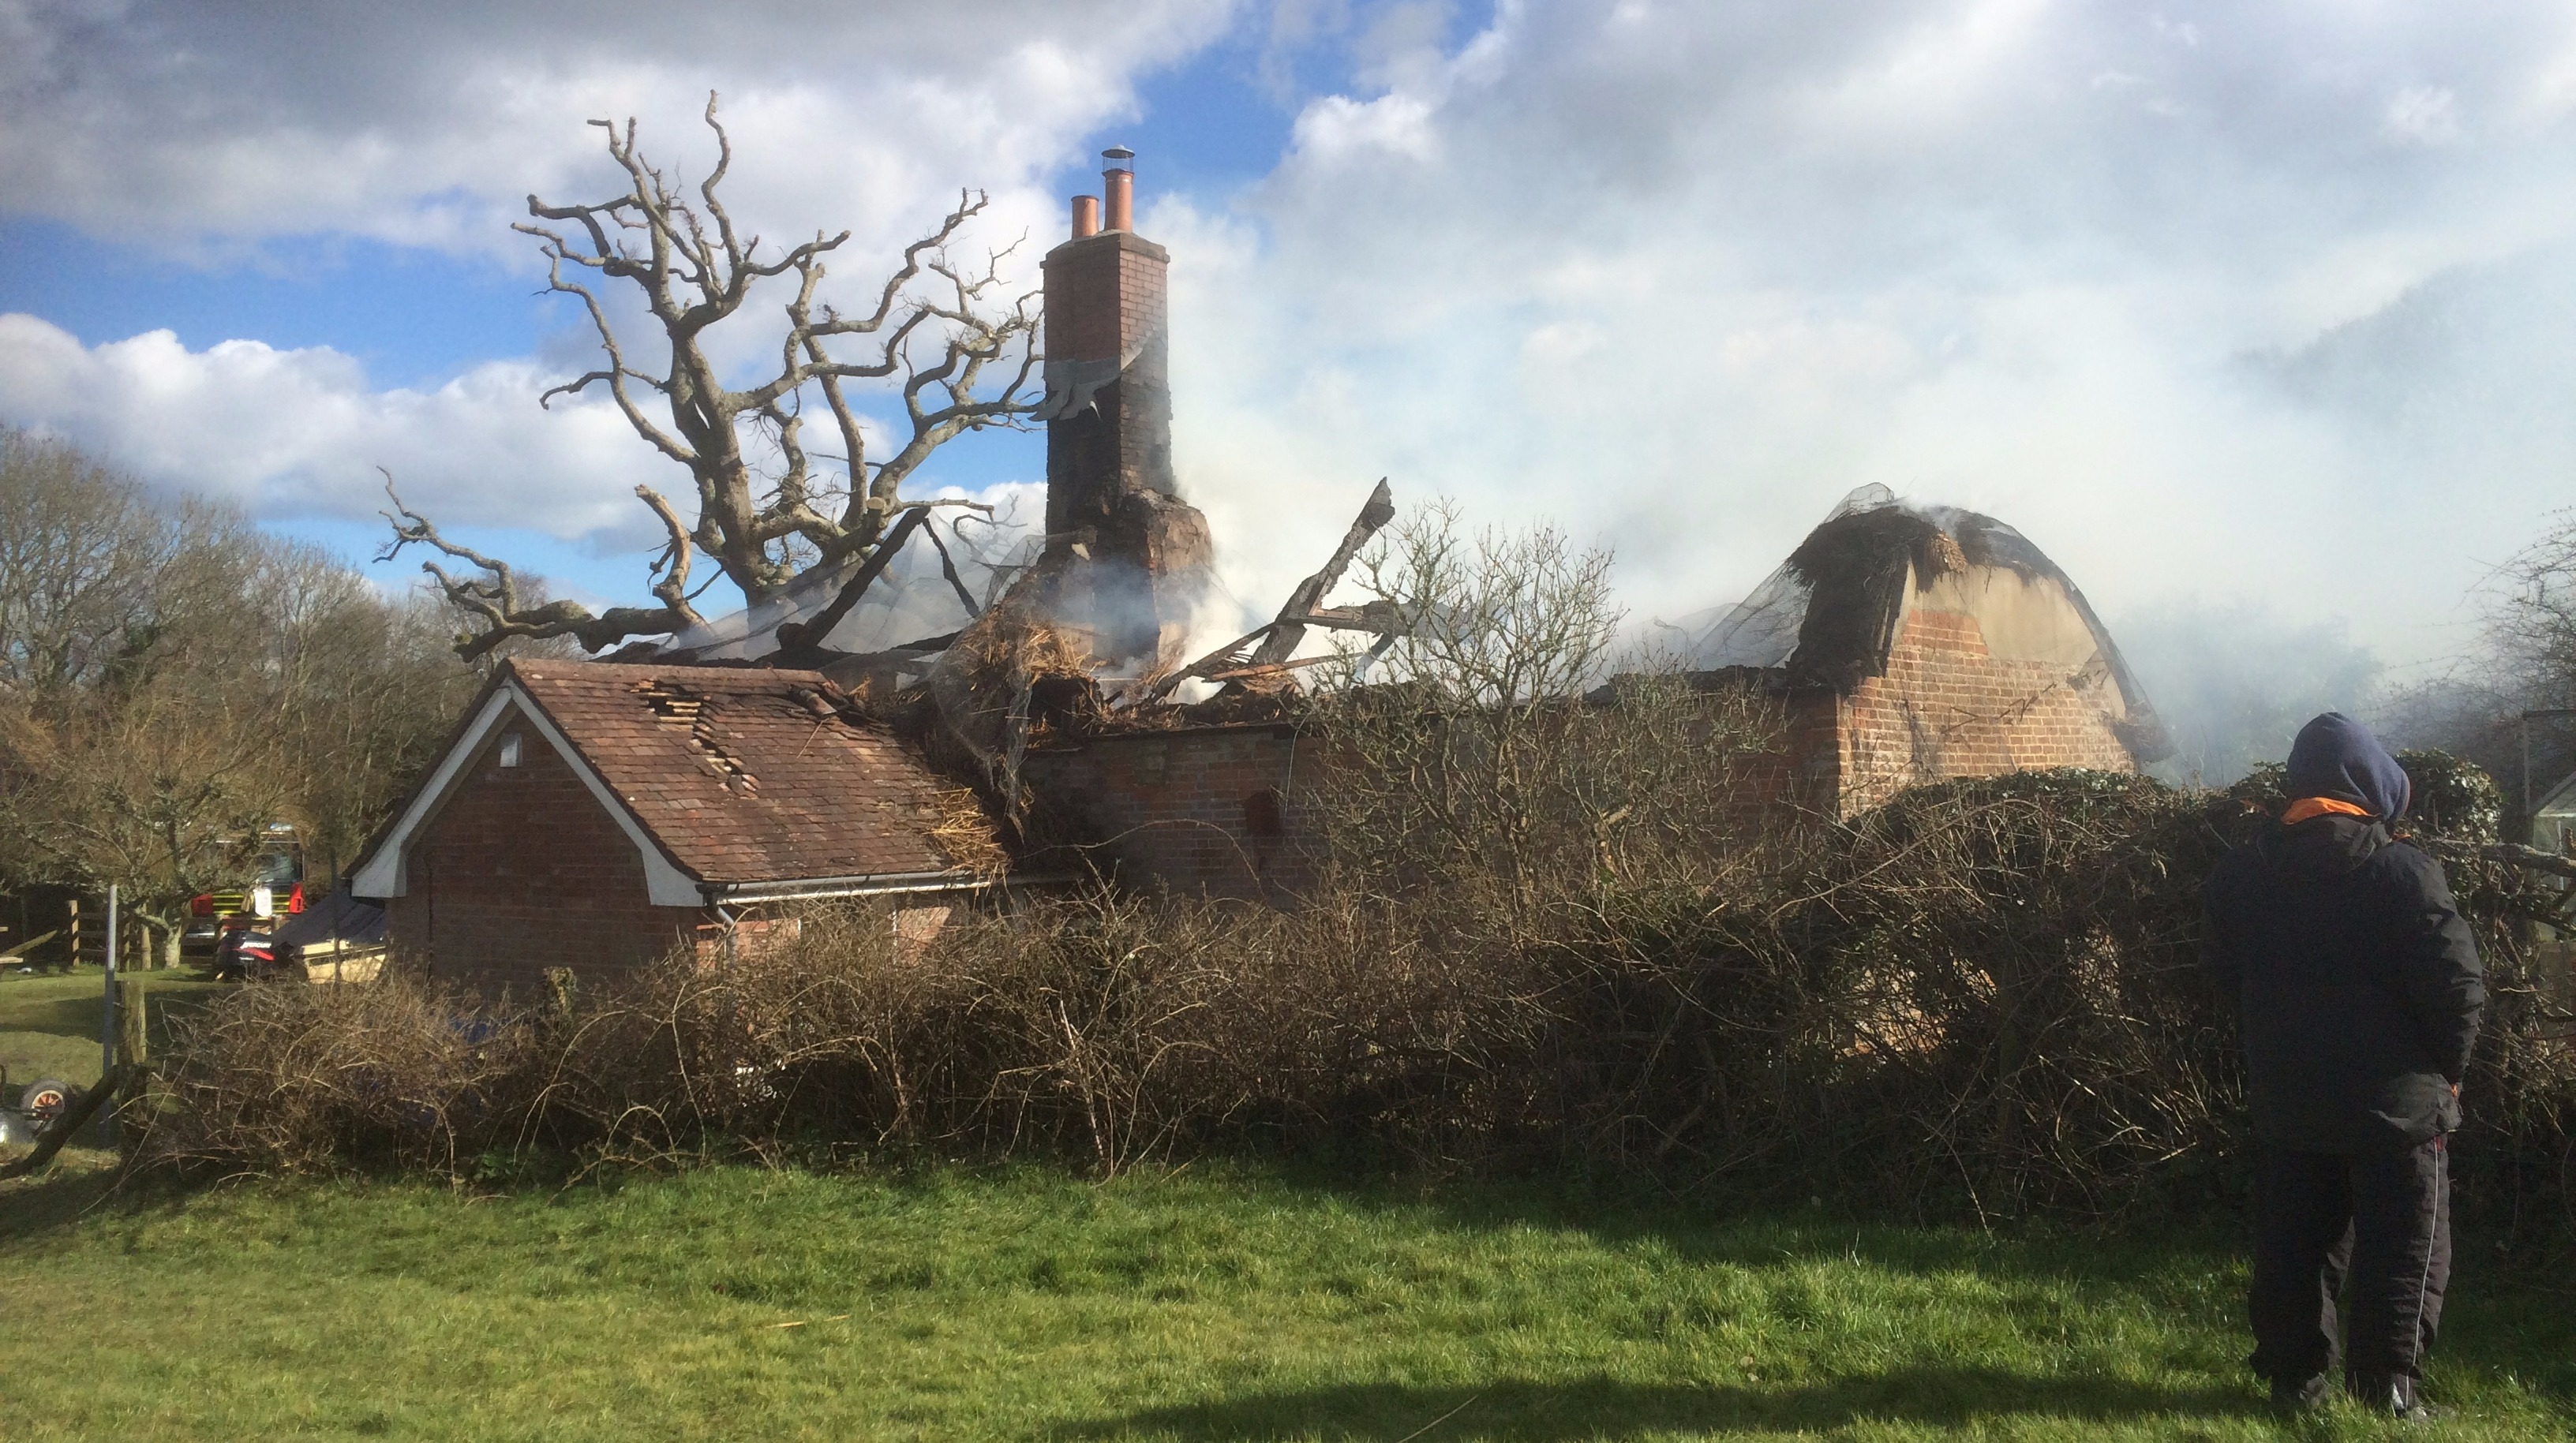 Two Thatched Cottages Severely Damaged By Fire Meridian